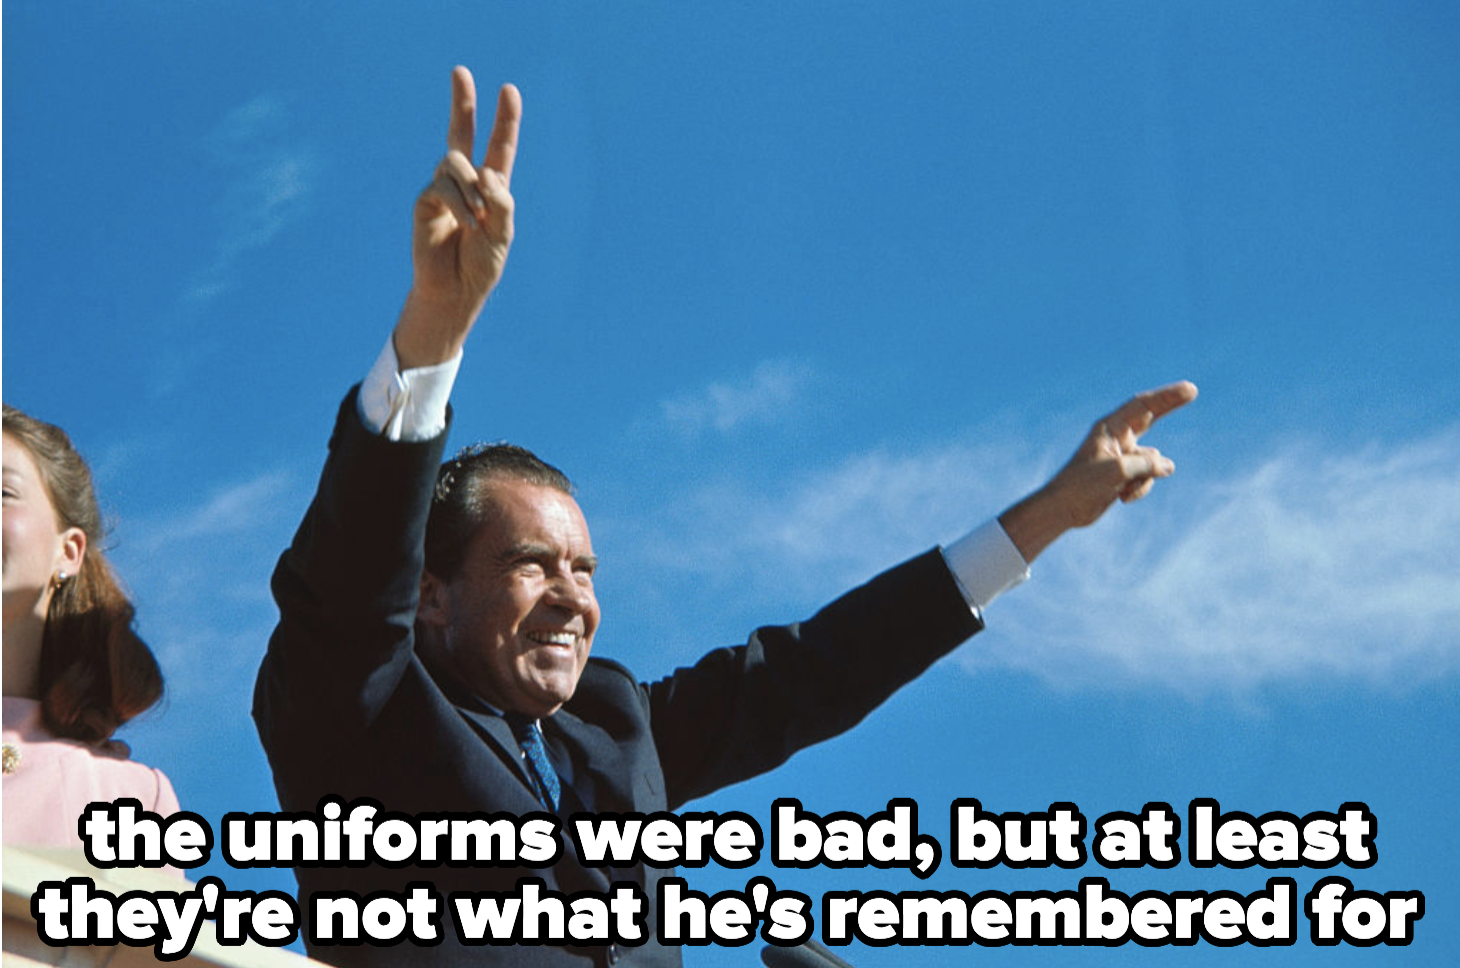 Nixon giving peace signs. The uniforms were bad, but at least they're not what he's remembered for